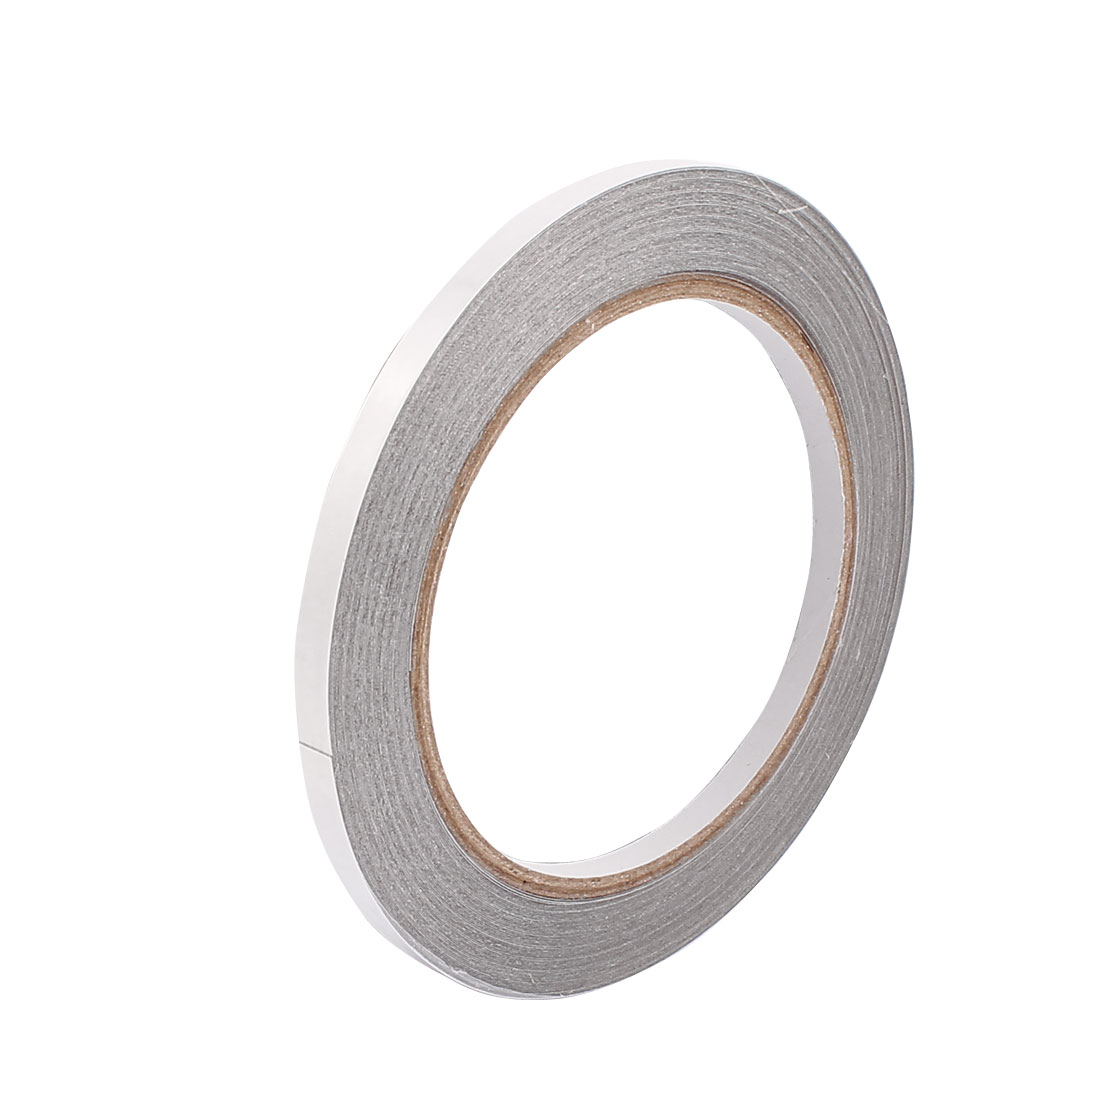 0.6CM Width 20 Meters Long Adhesive Single Sided Conductive Wear Resistant Tape